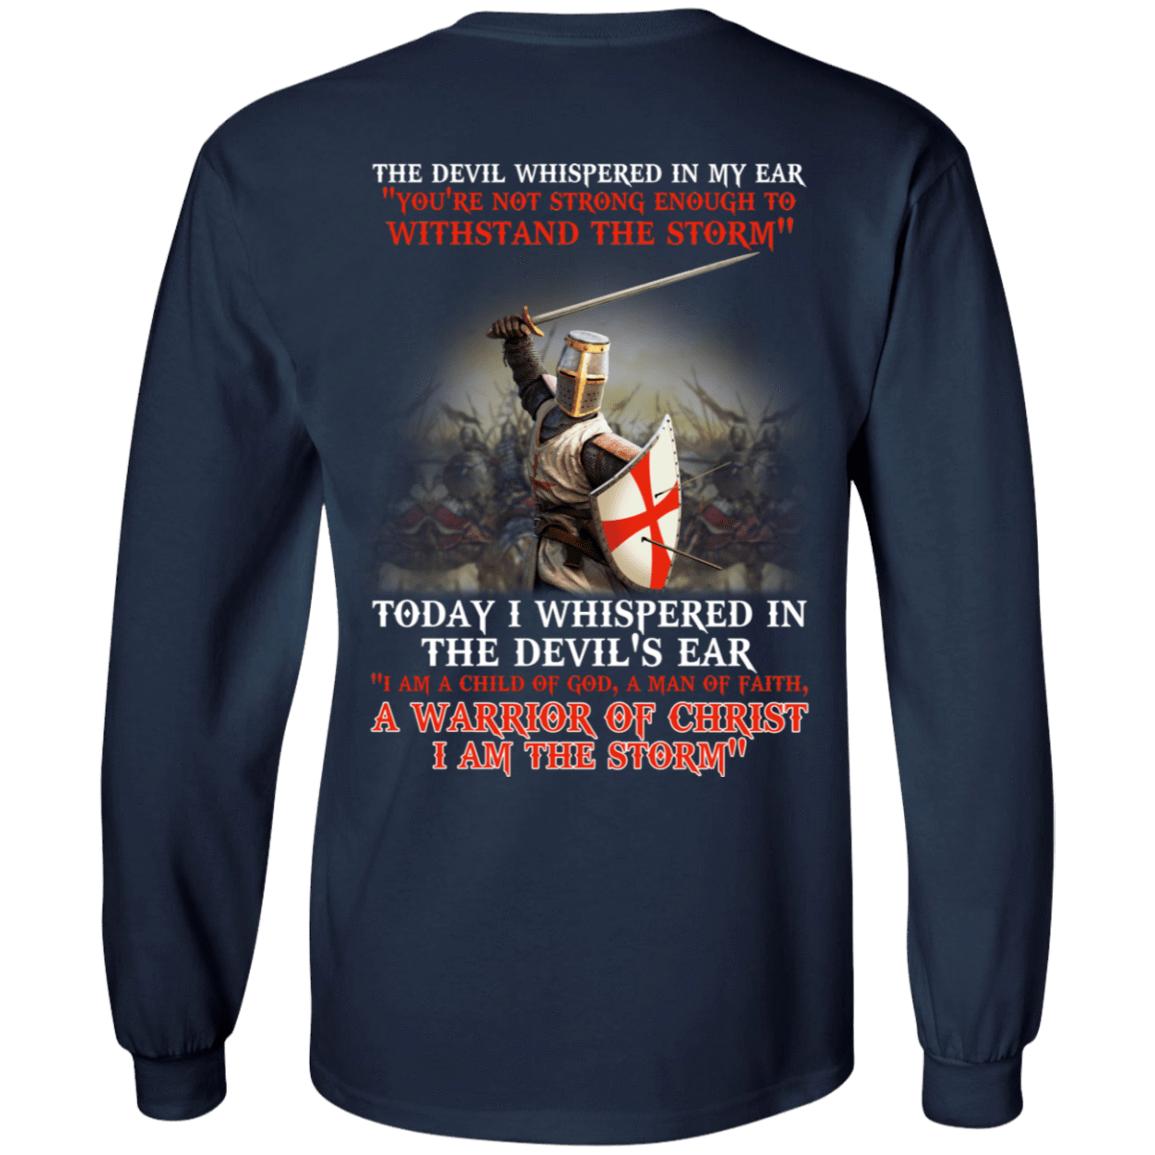 Knight Templar: I Am A Child Of God A Warrior Of Christ I Am The Storm 30-184-72774740-331 - Tee Ript